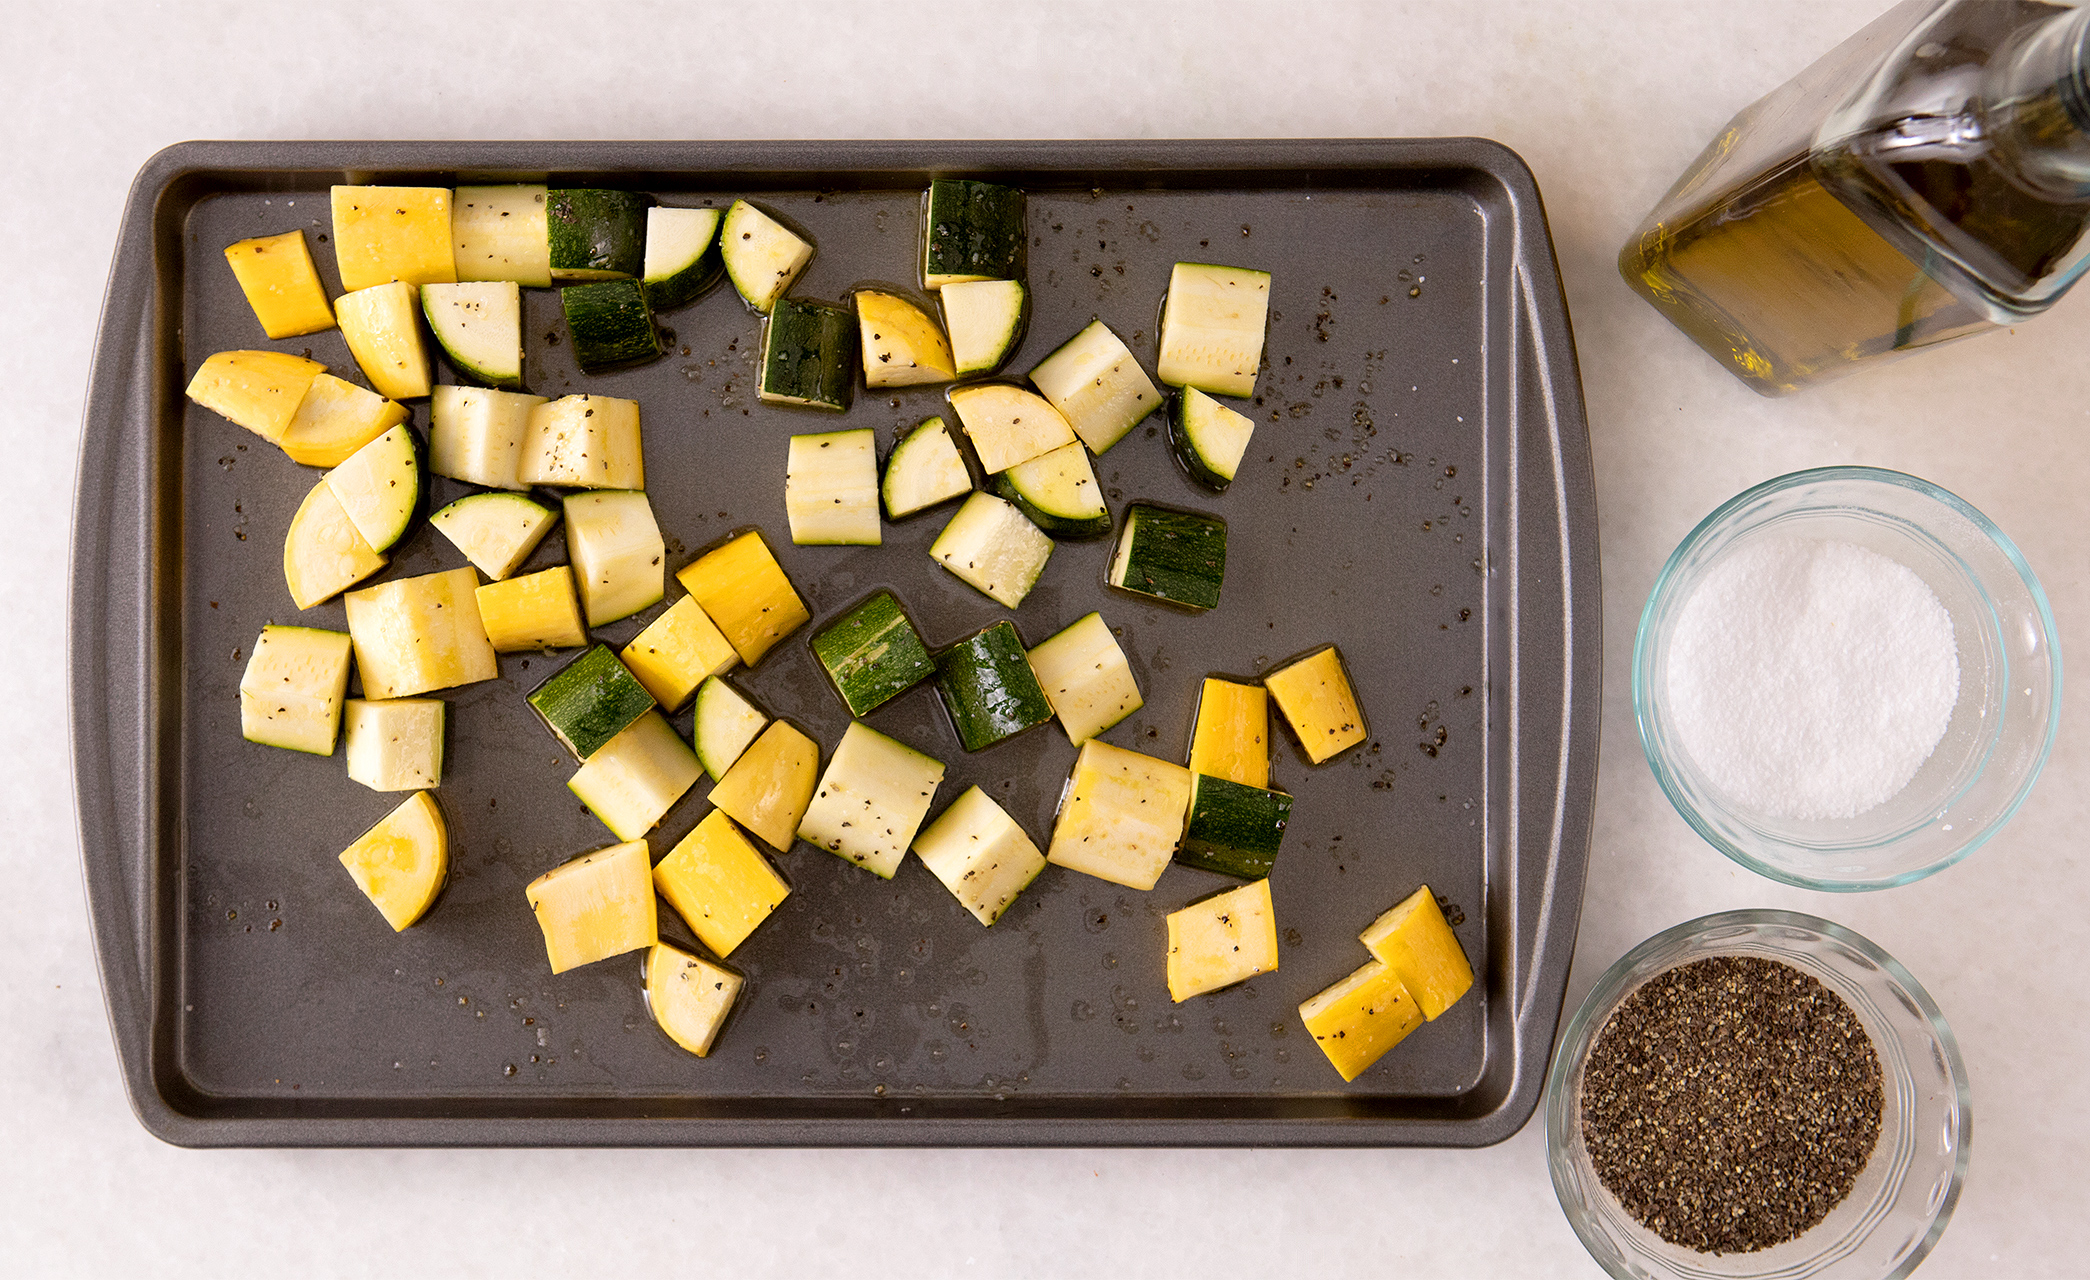 yellow squash and zucchini on pan with oil salt pepper to roast